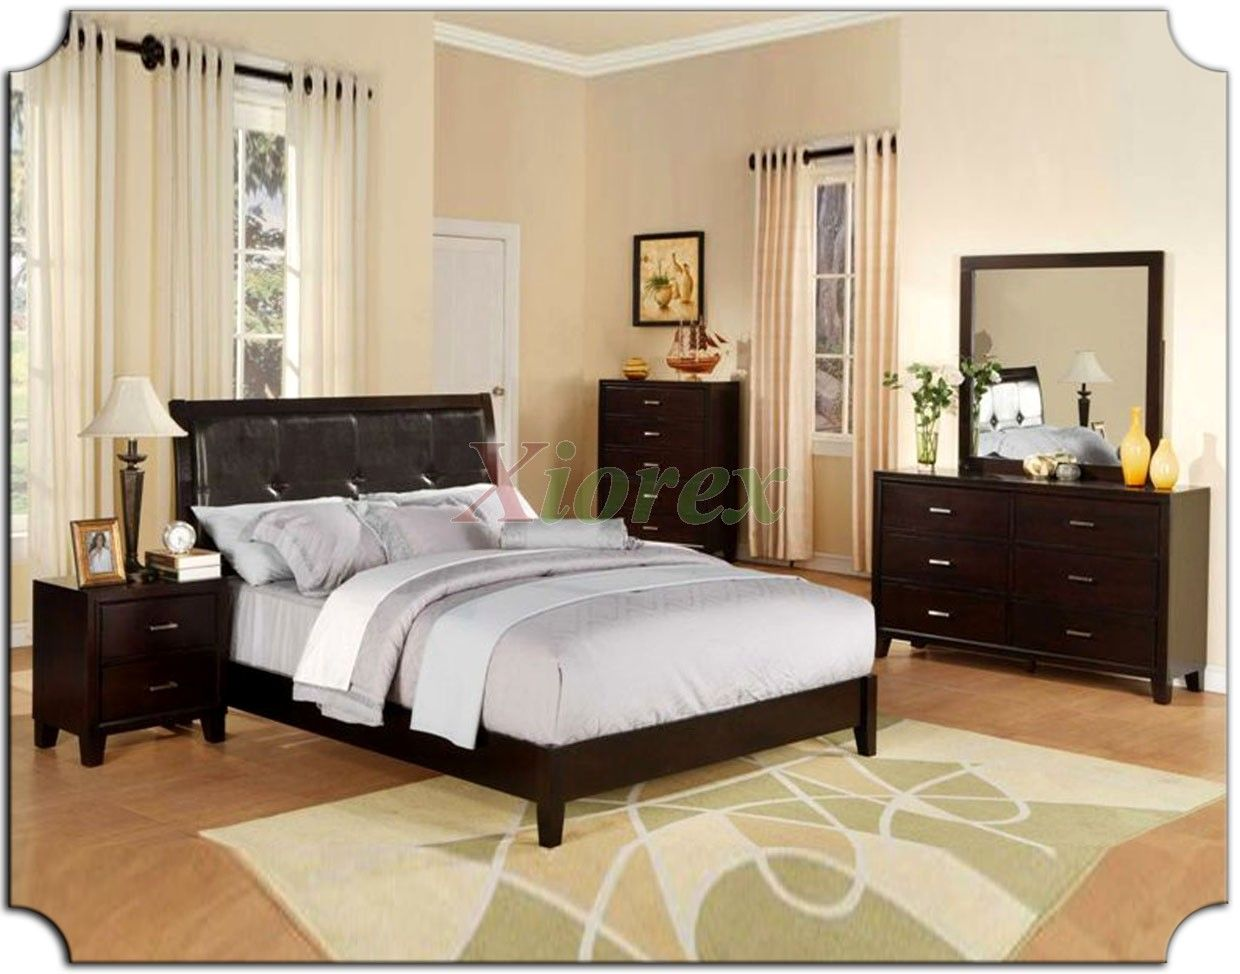 Superbe Bedroom Sets With Leather Headboards